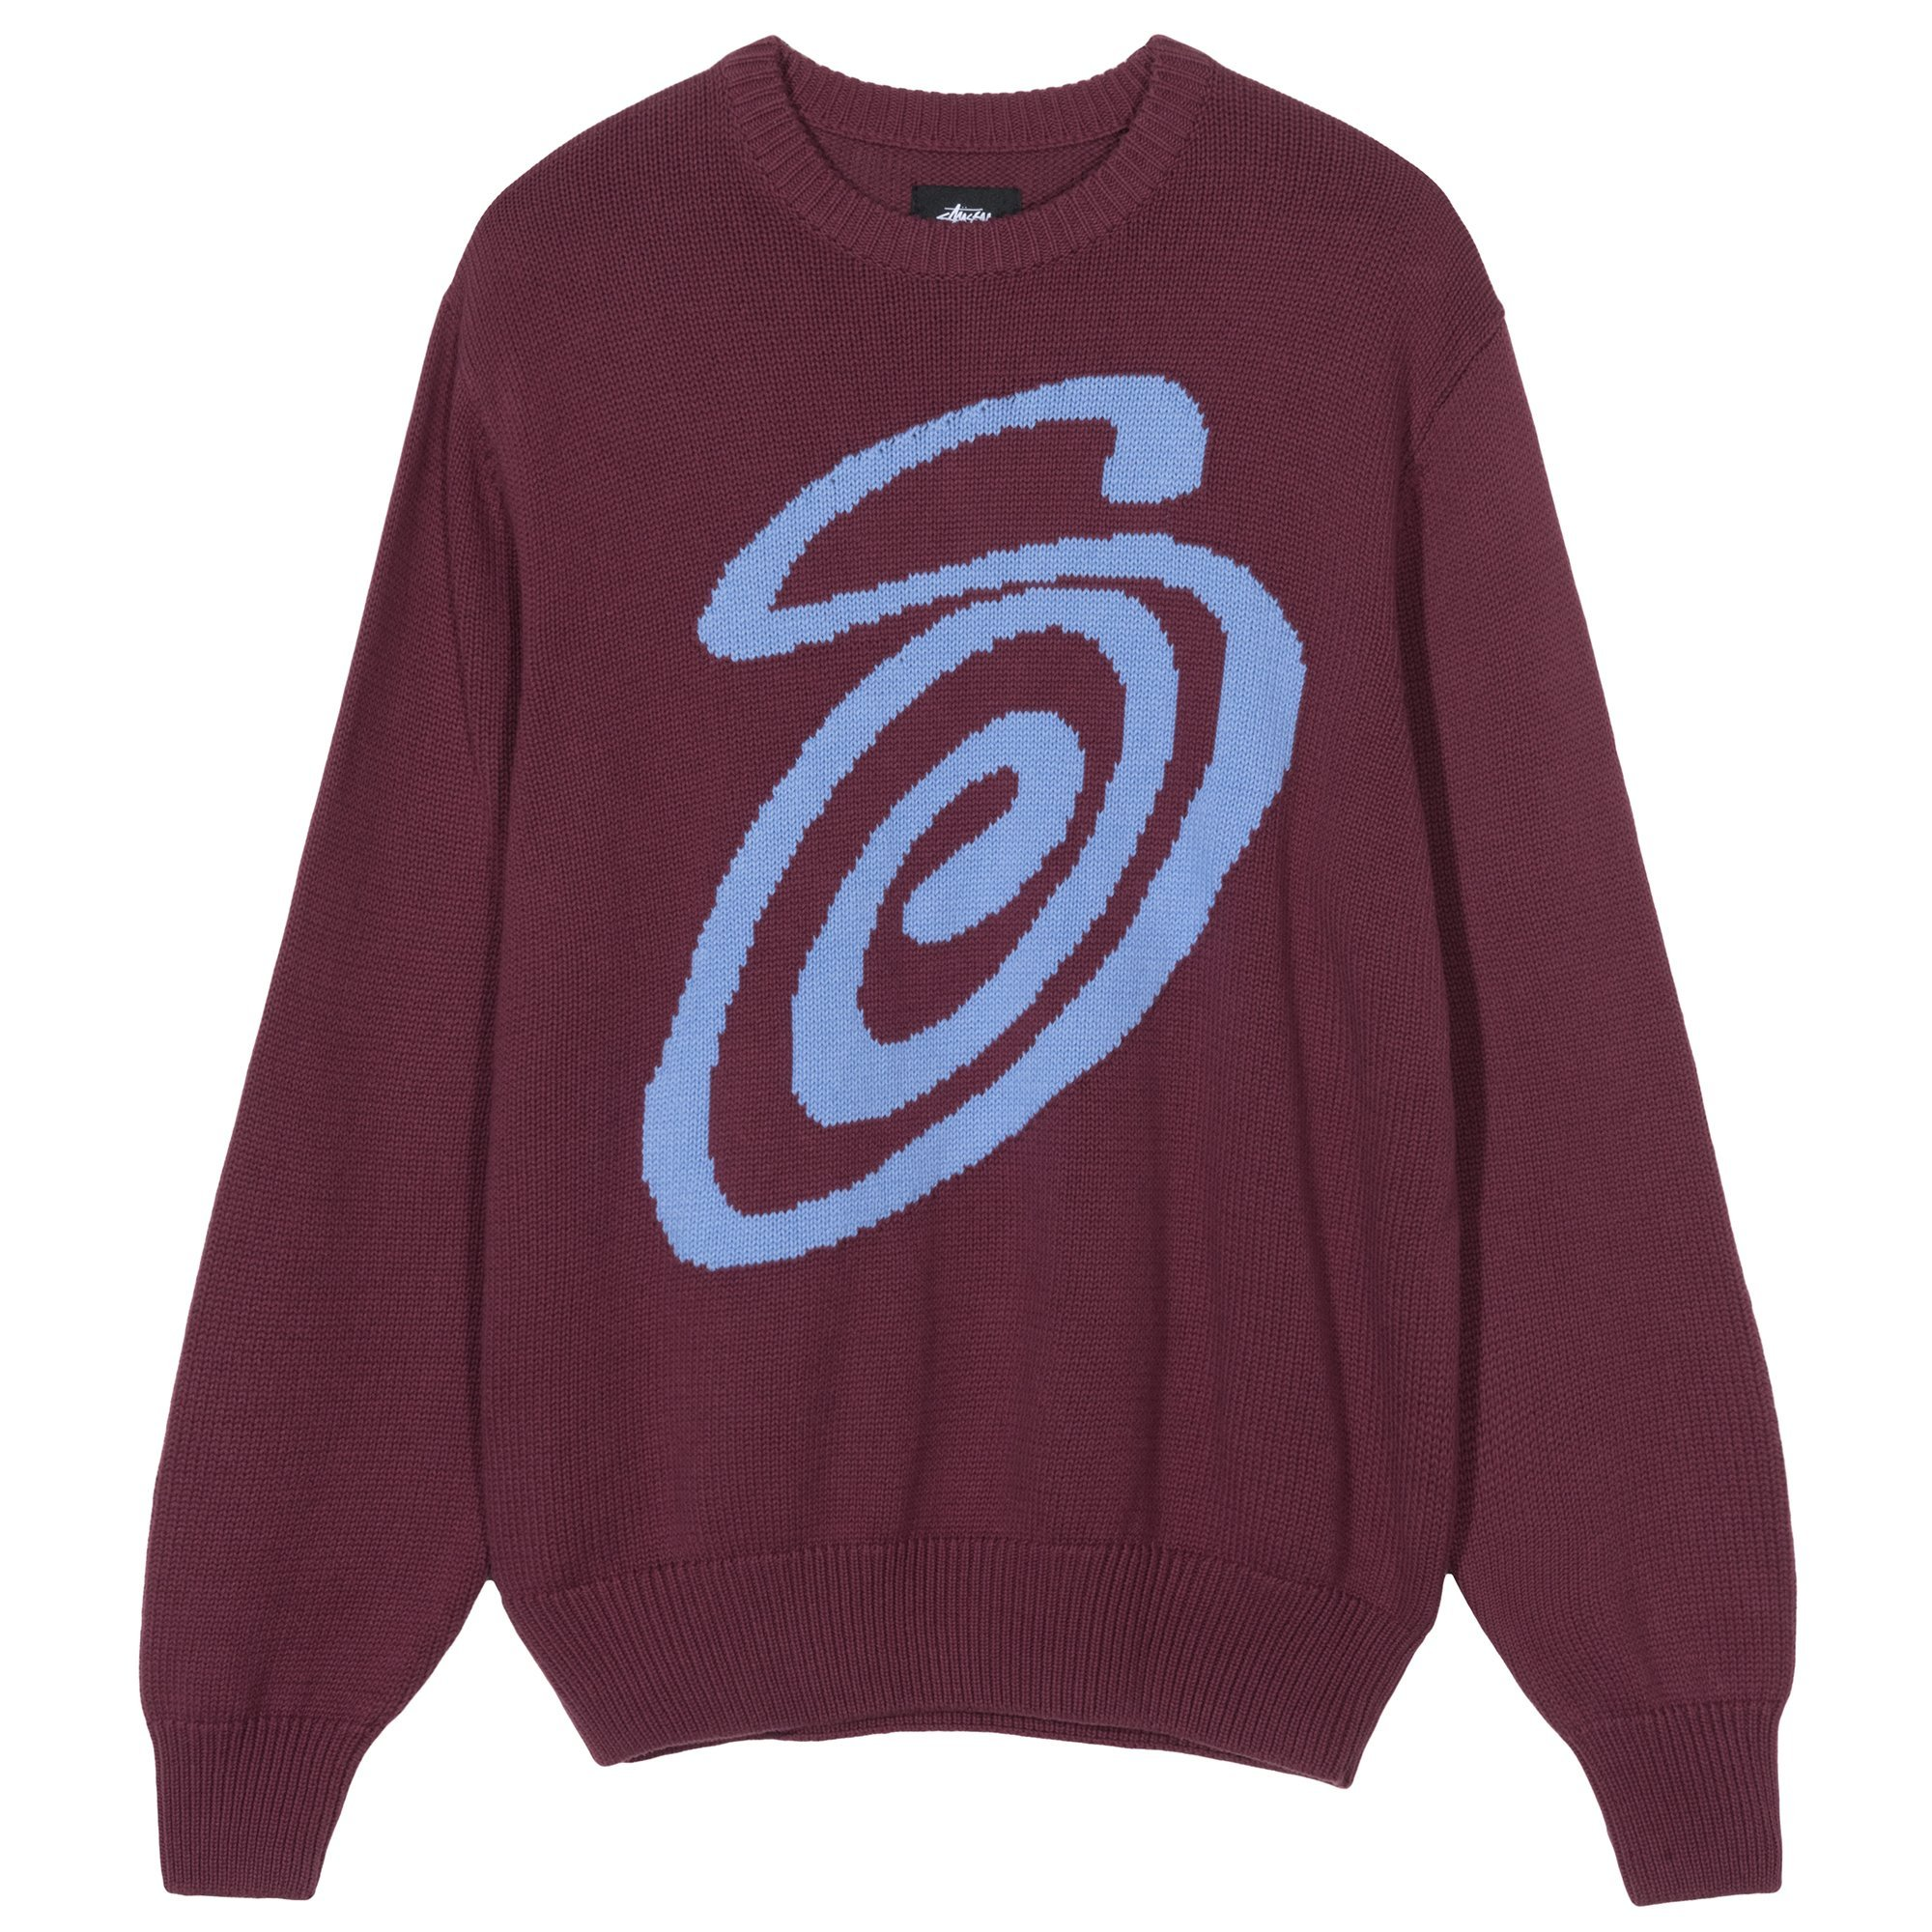 Image of CURLY S SWEATER